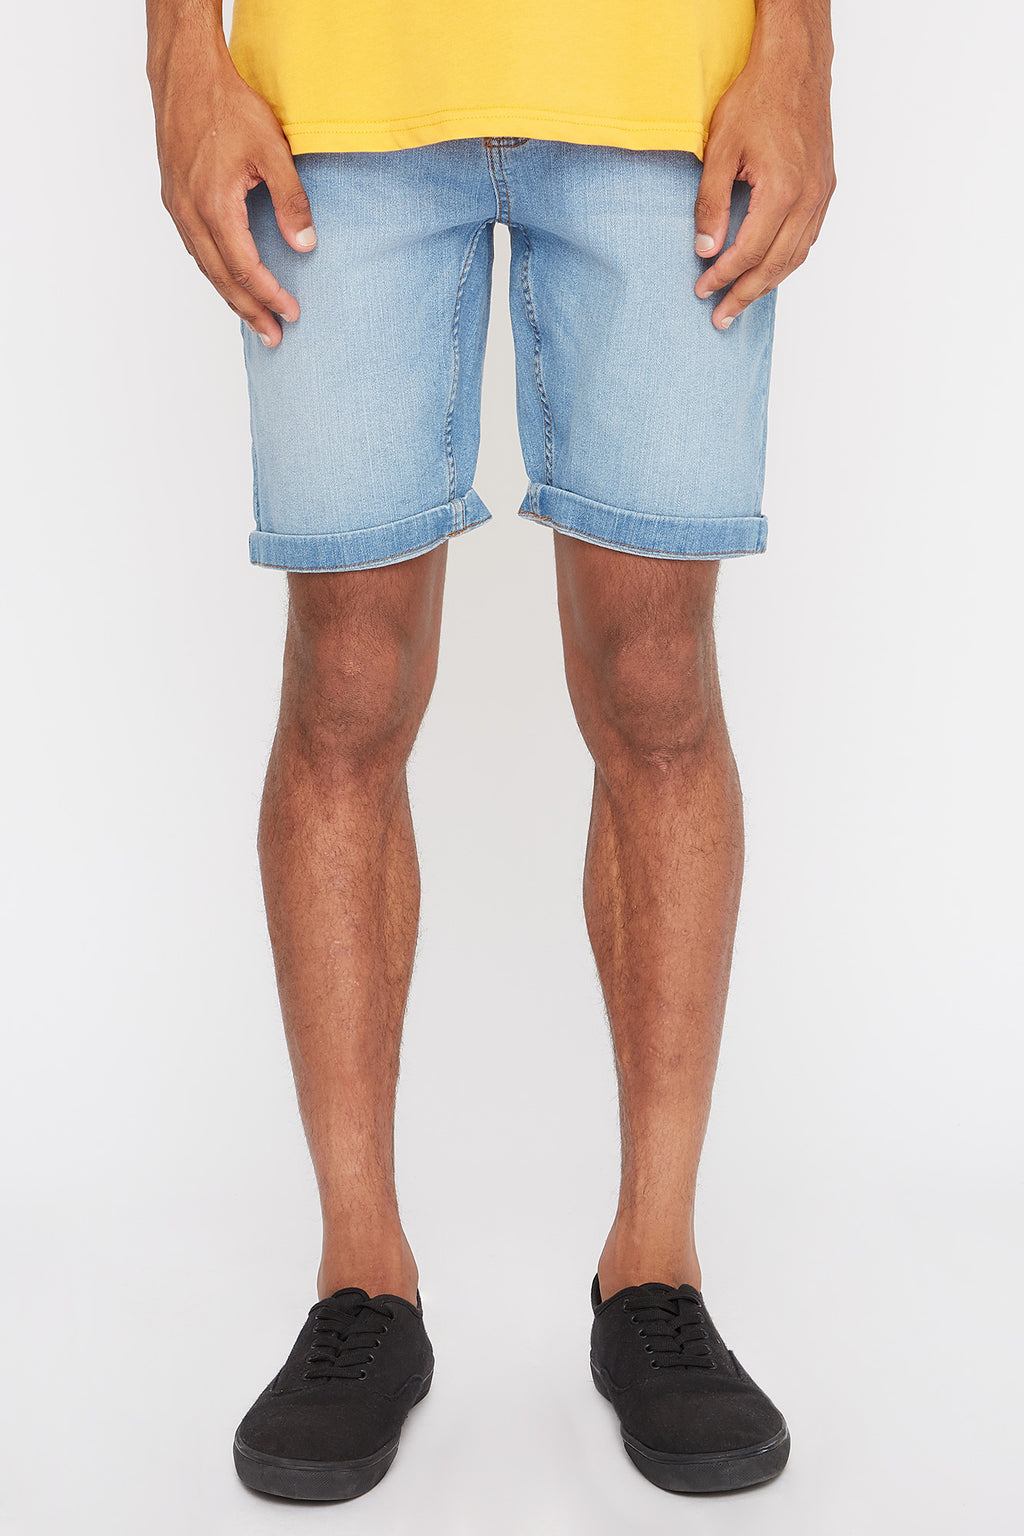 Zoo York Mens 5 Pocket Slim Denim Shorts